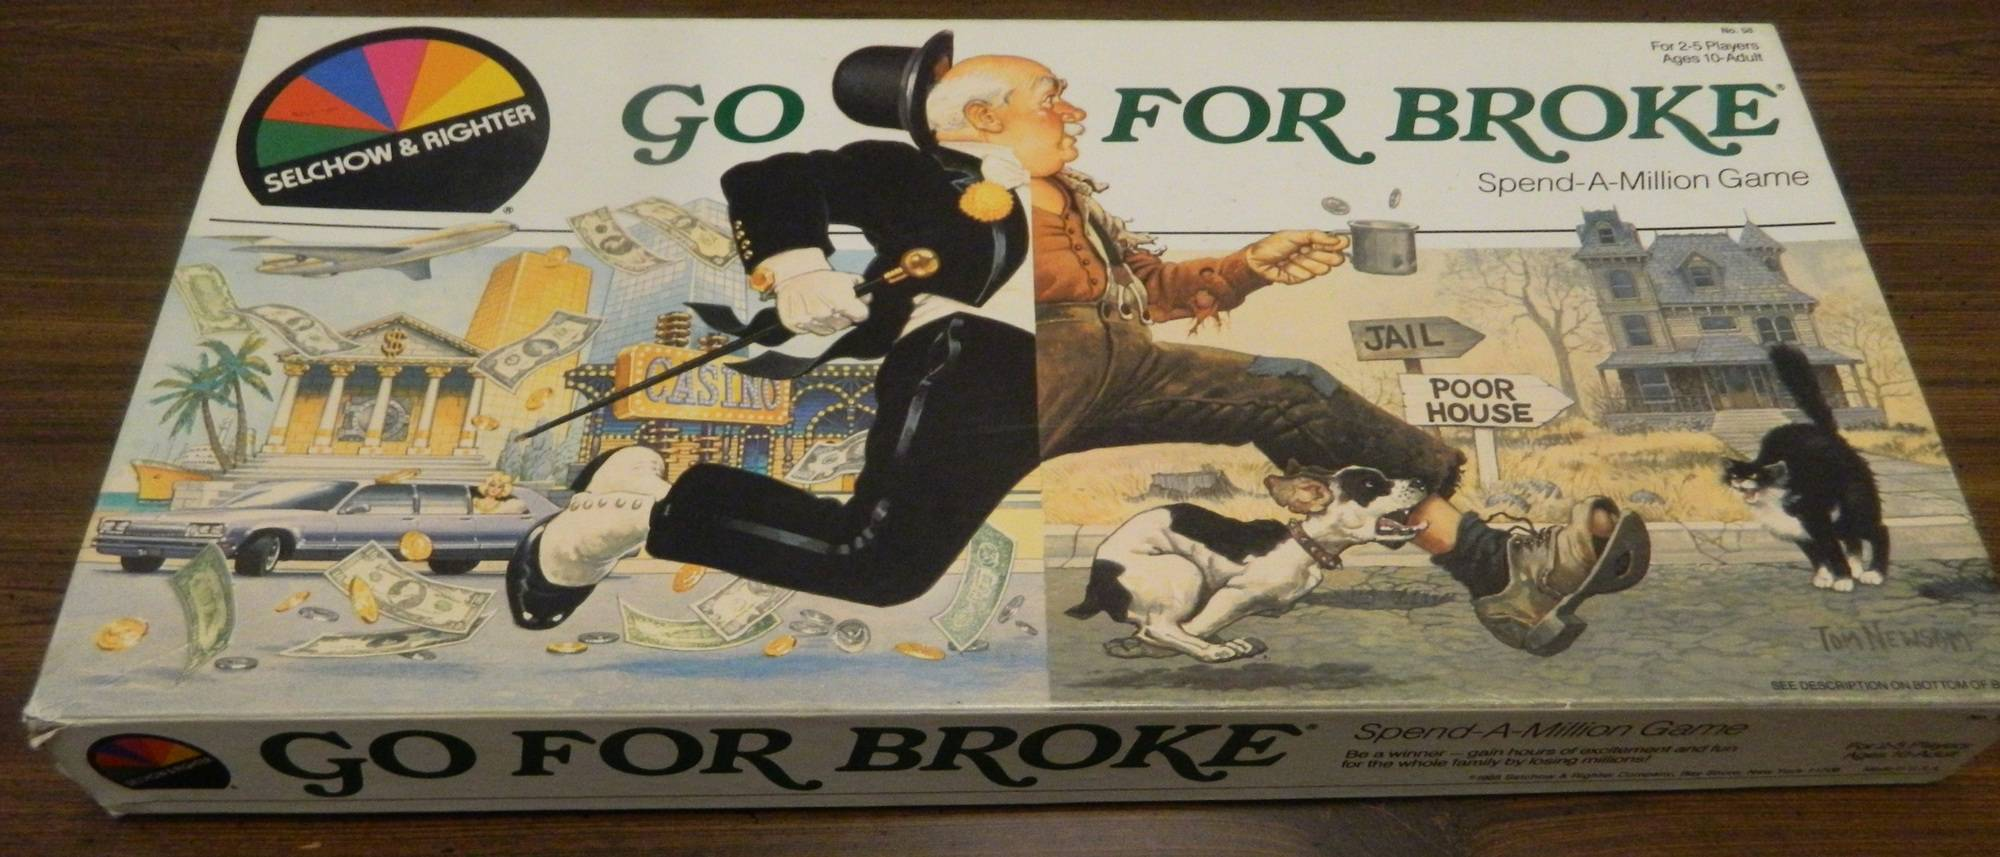 Box for Go For Broke